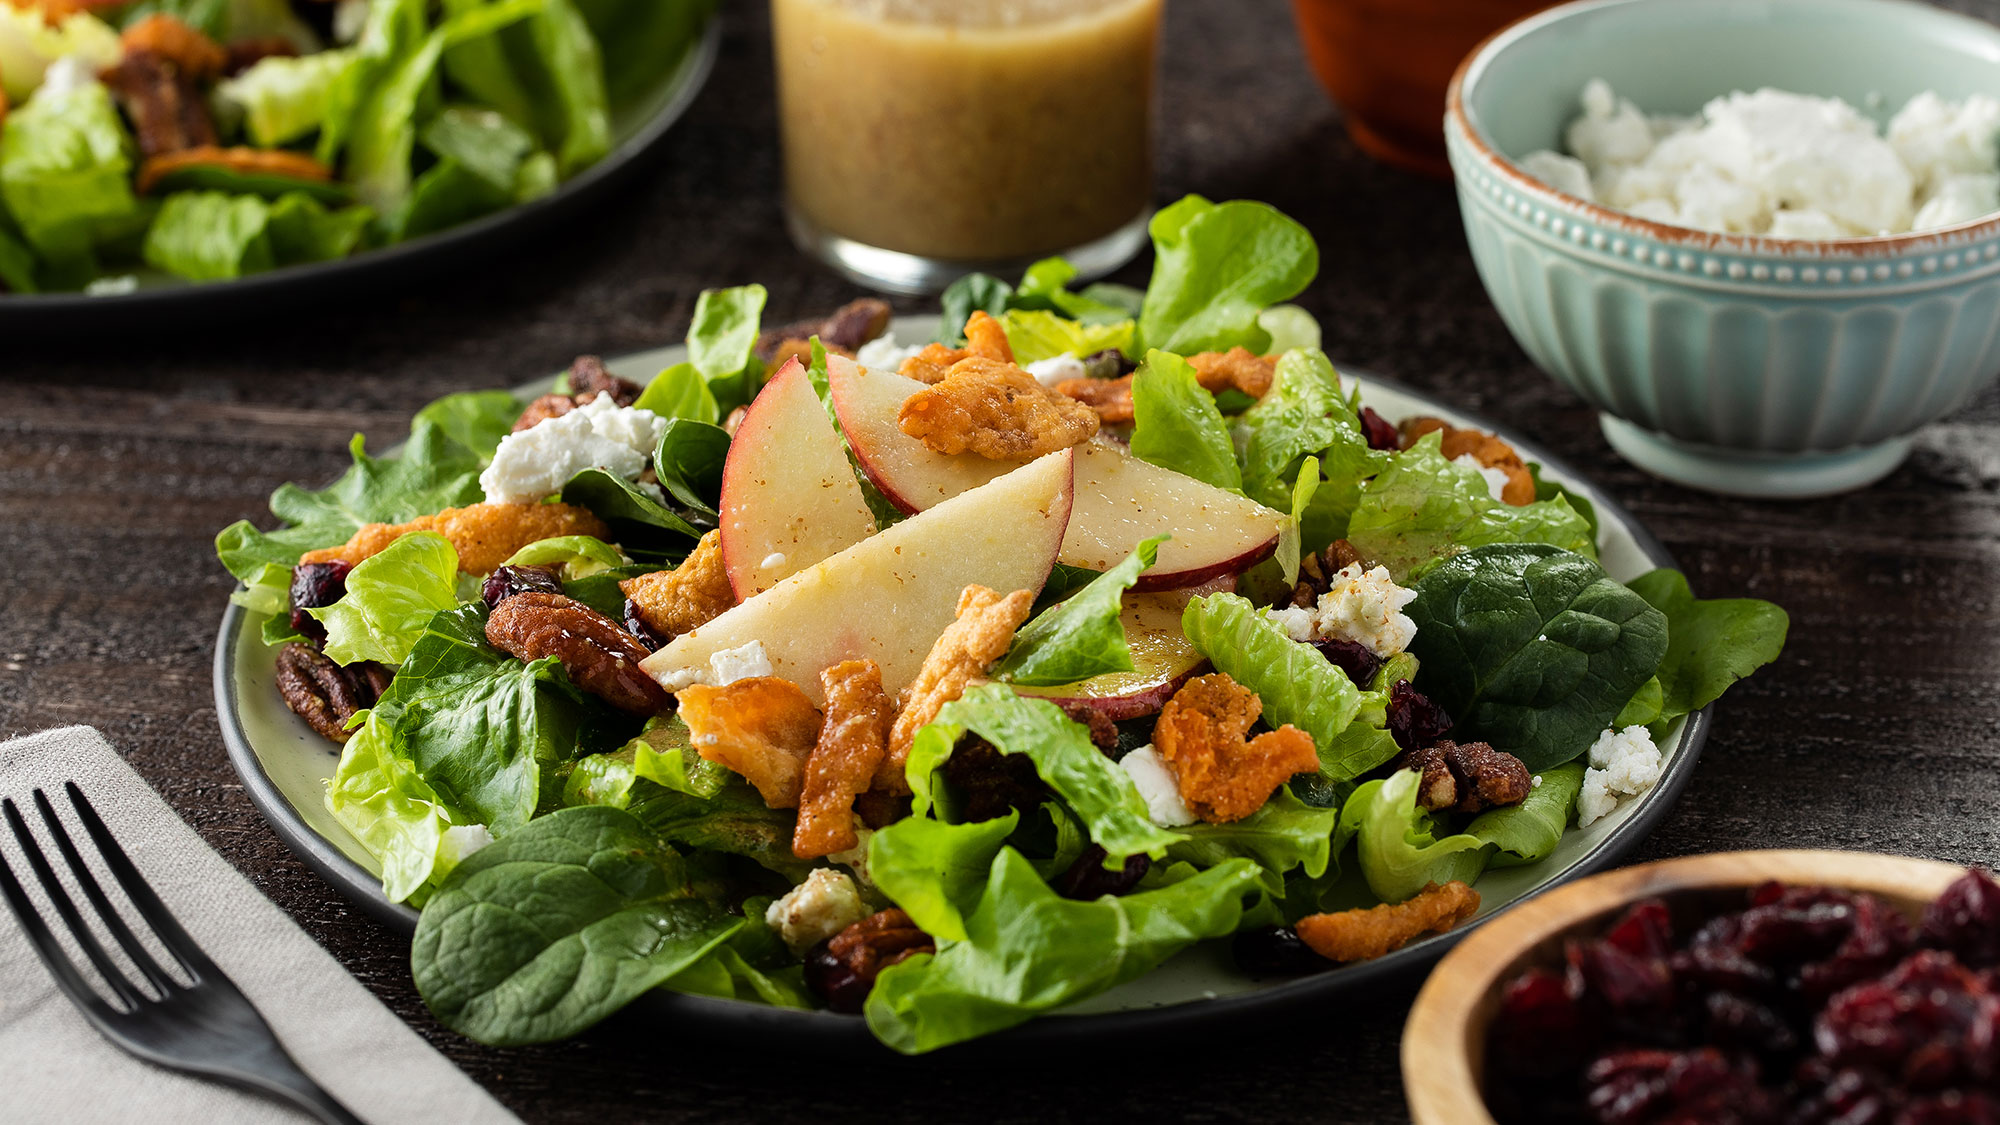 French's Harvest Salad with Sweet Dijon Vinaigrette